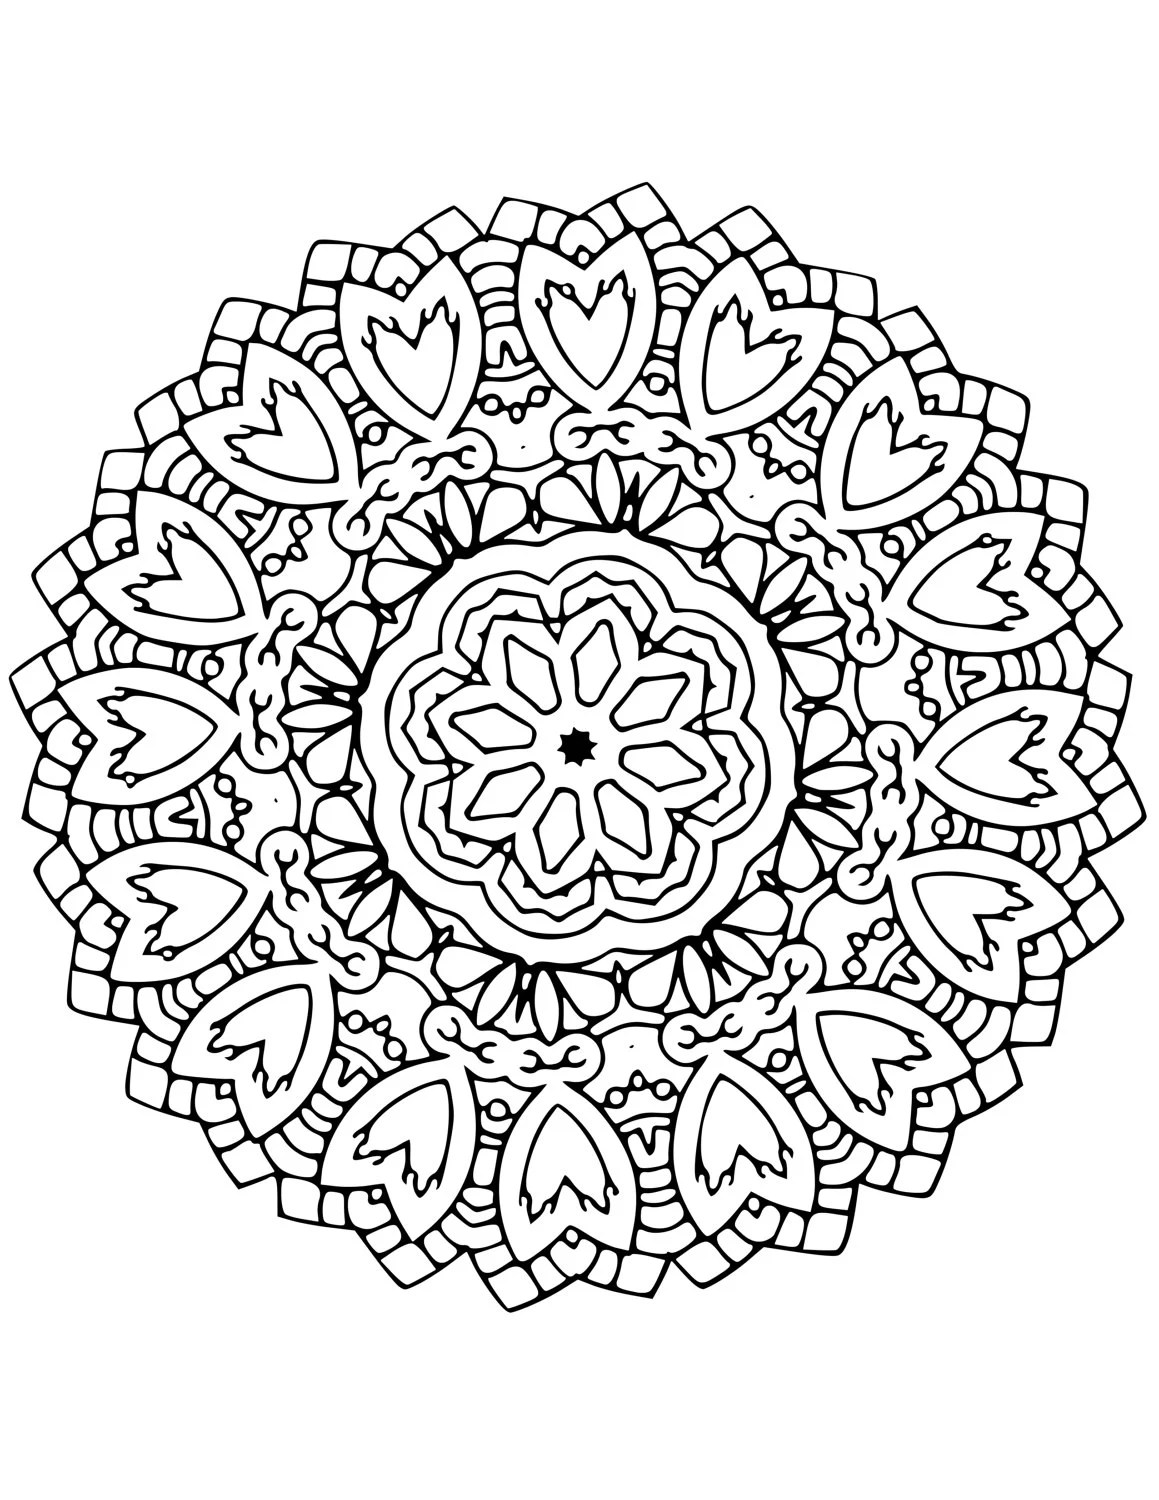 Items similar to Advent 2015: Coloring Pages and Activity